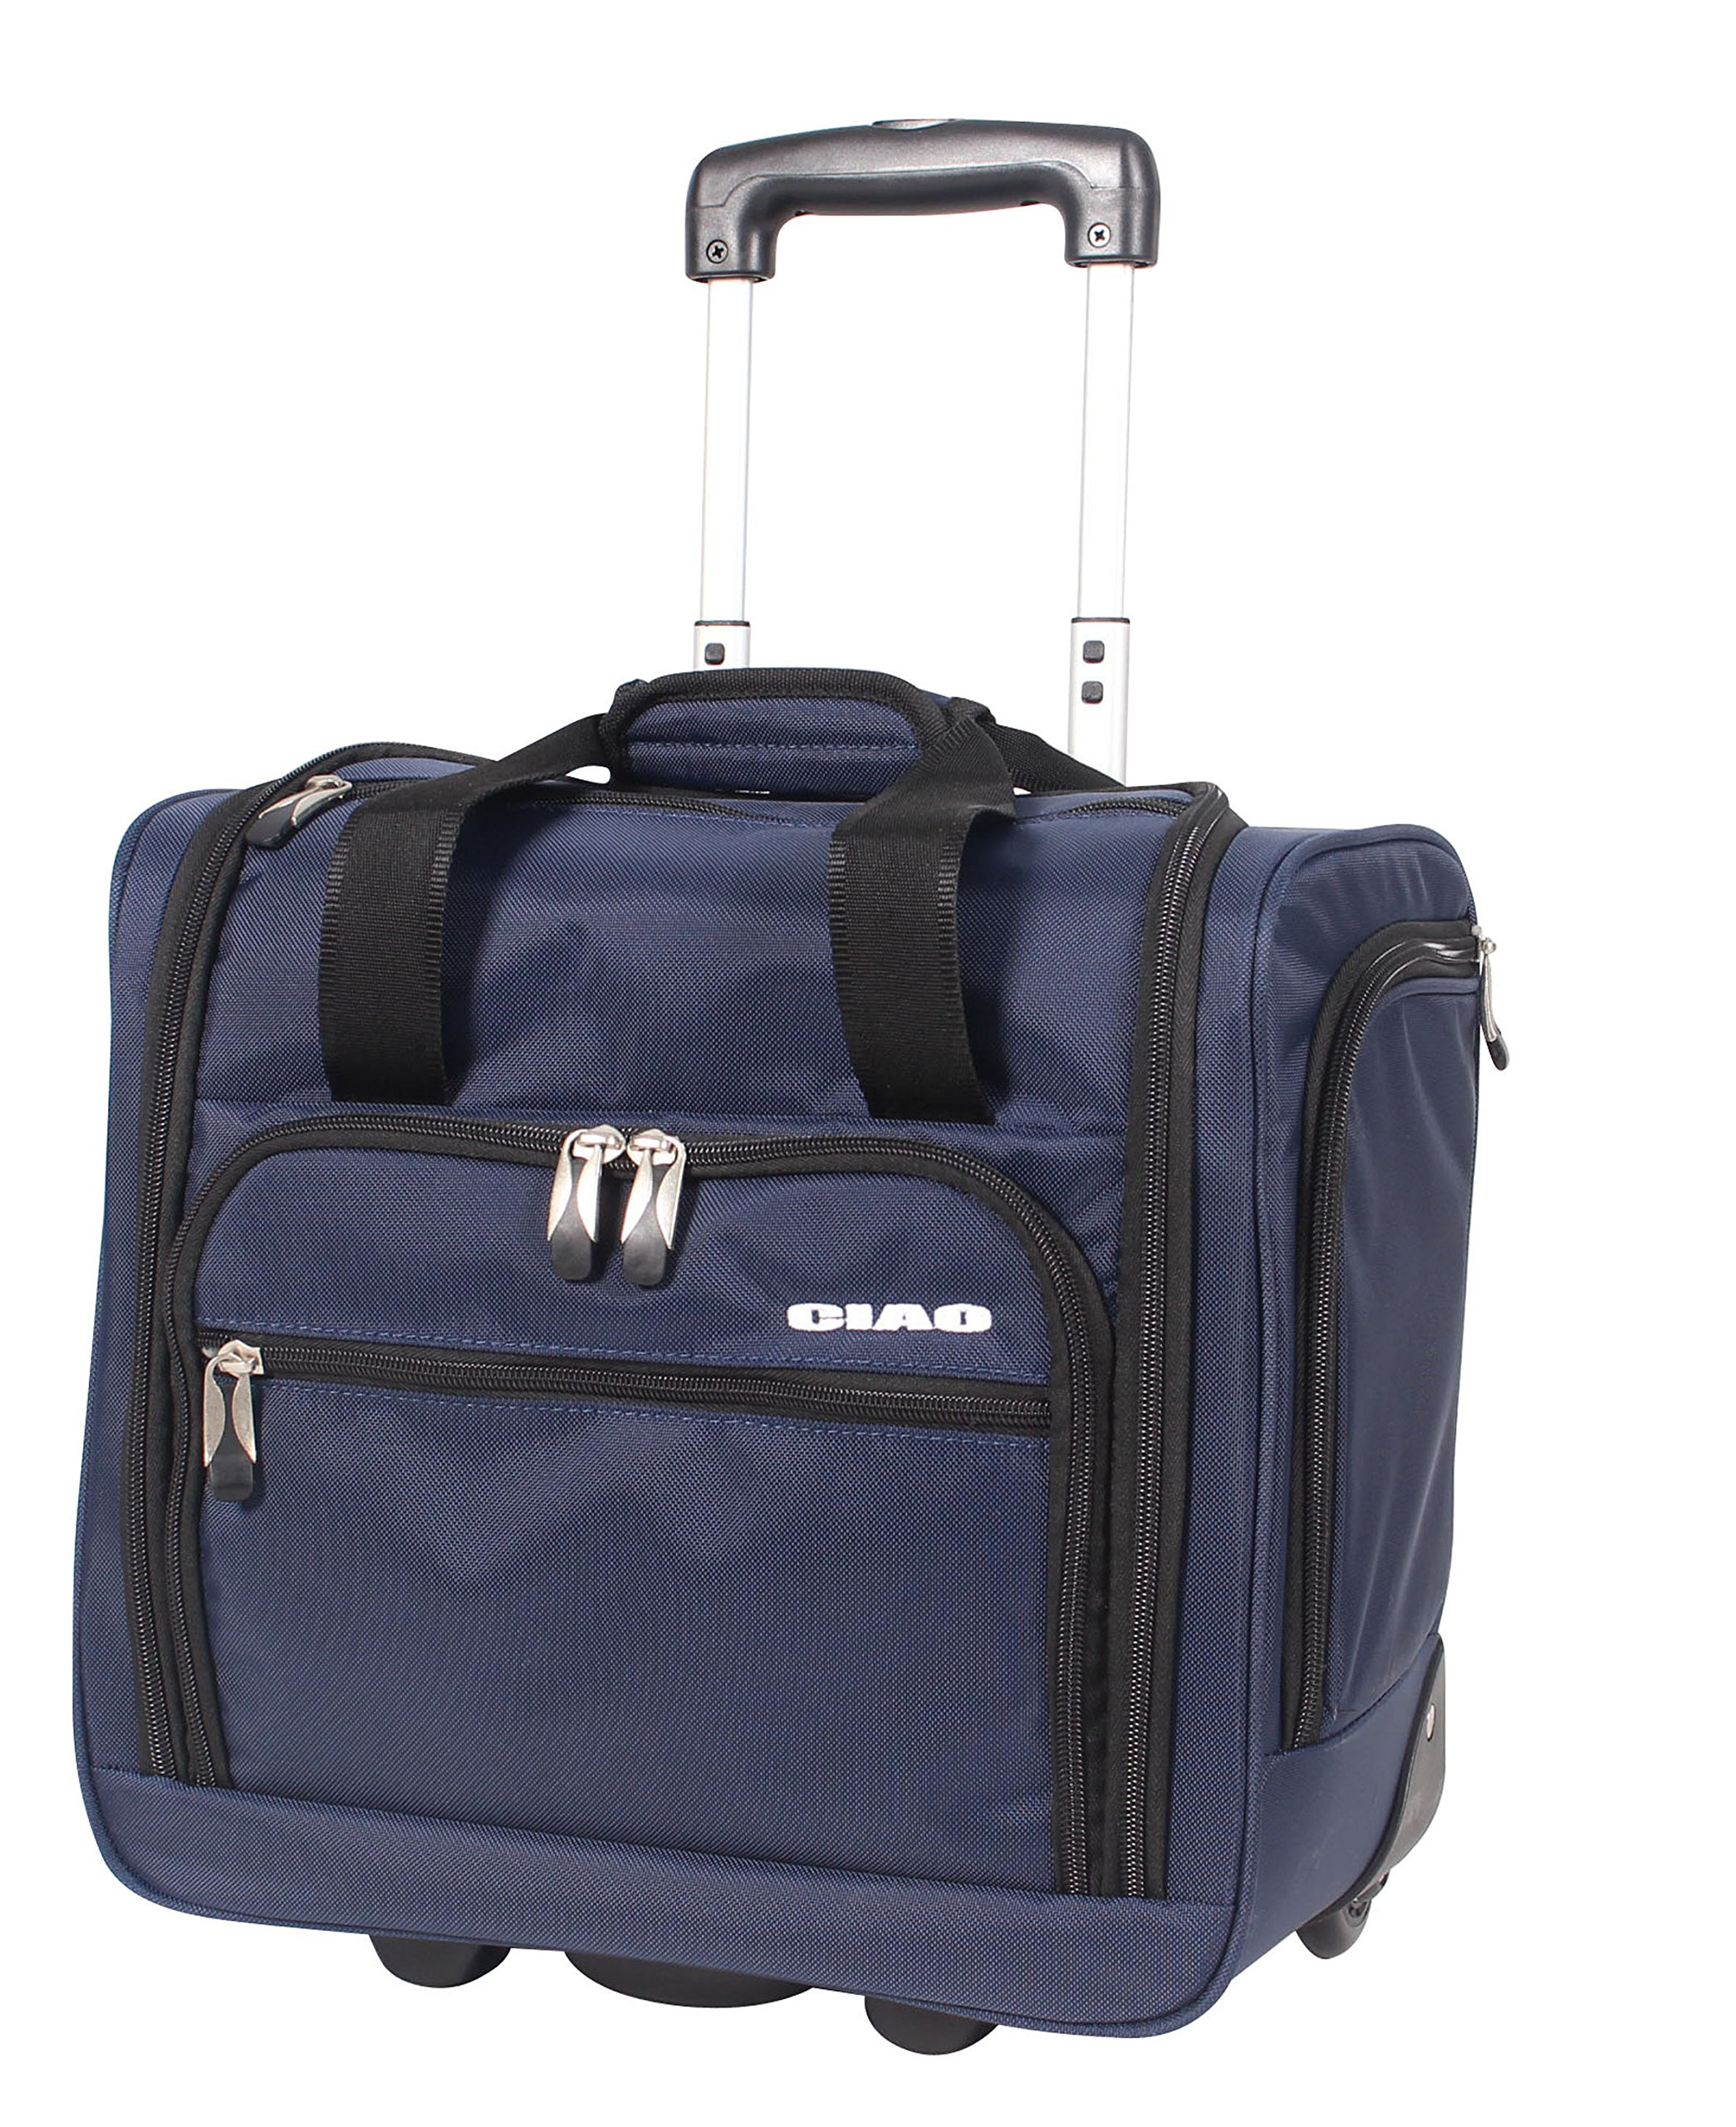 Ciao Carry On Wheeled Under The Seat Bag (Navy)